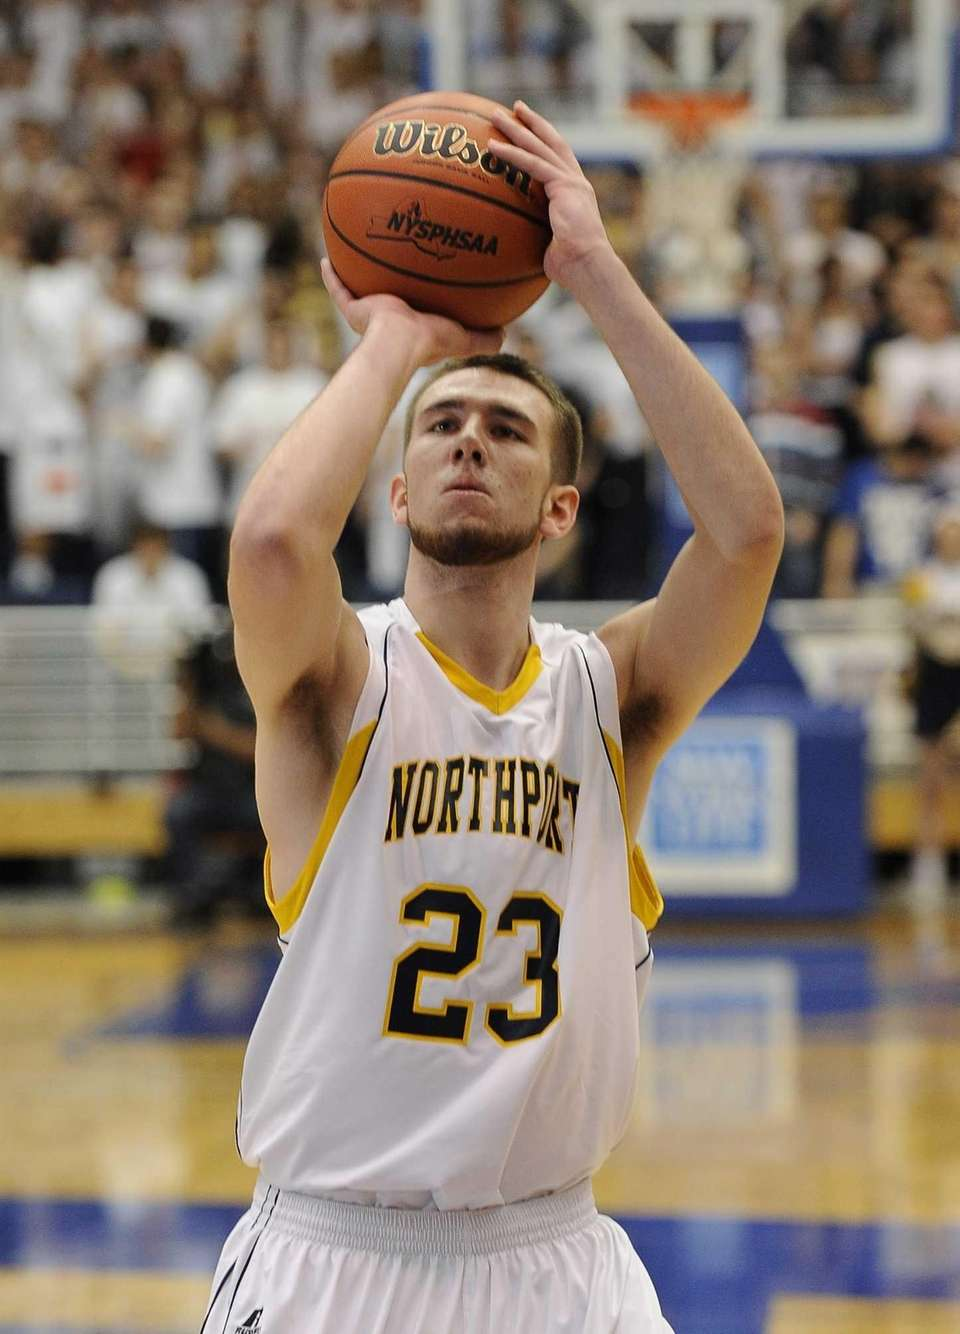 Northport's Andrew Seaman shoots a free throw against